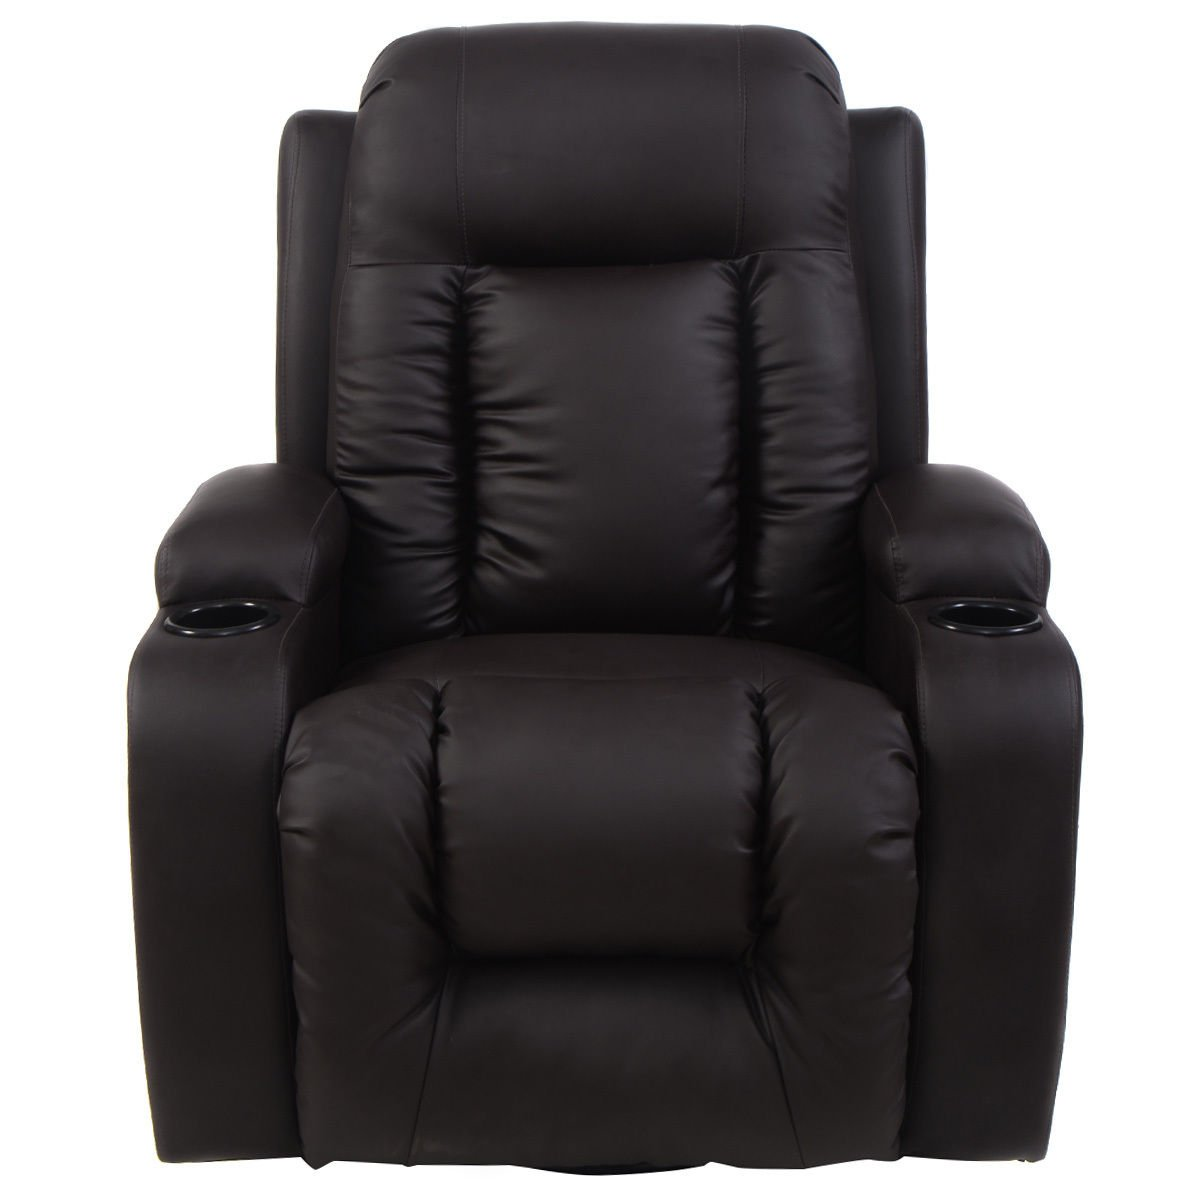 Tangkula PU Leather Massage Chair Home Office Recliner Heated Deluxe Ergonomic Lounge Sofa Chair w Control Brown